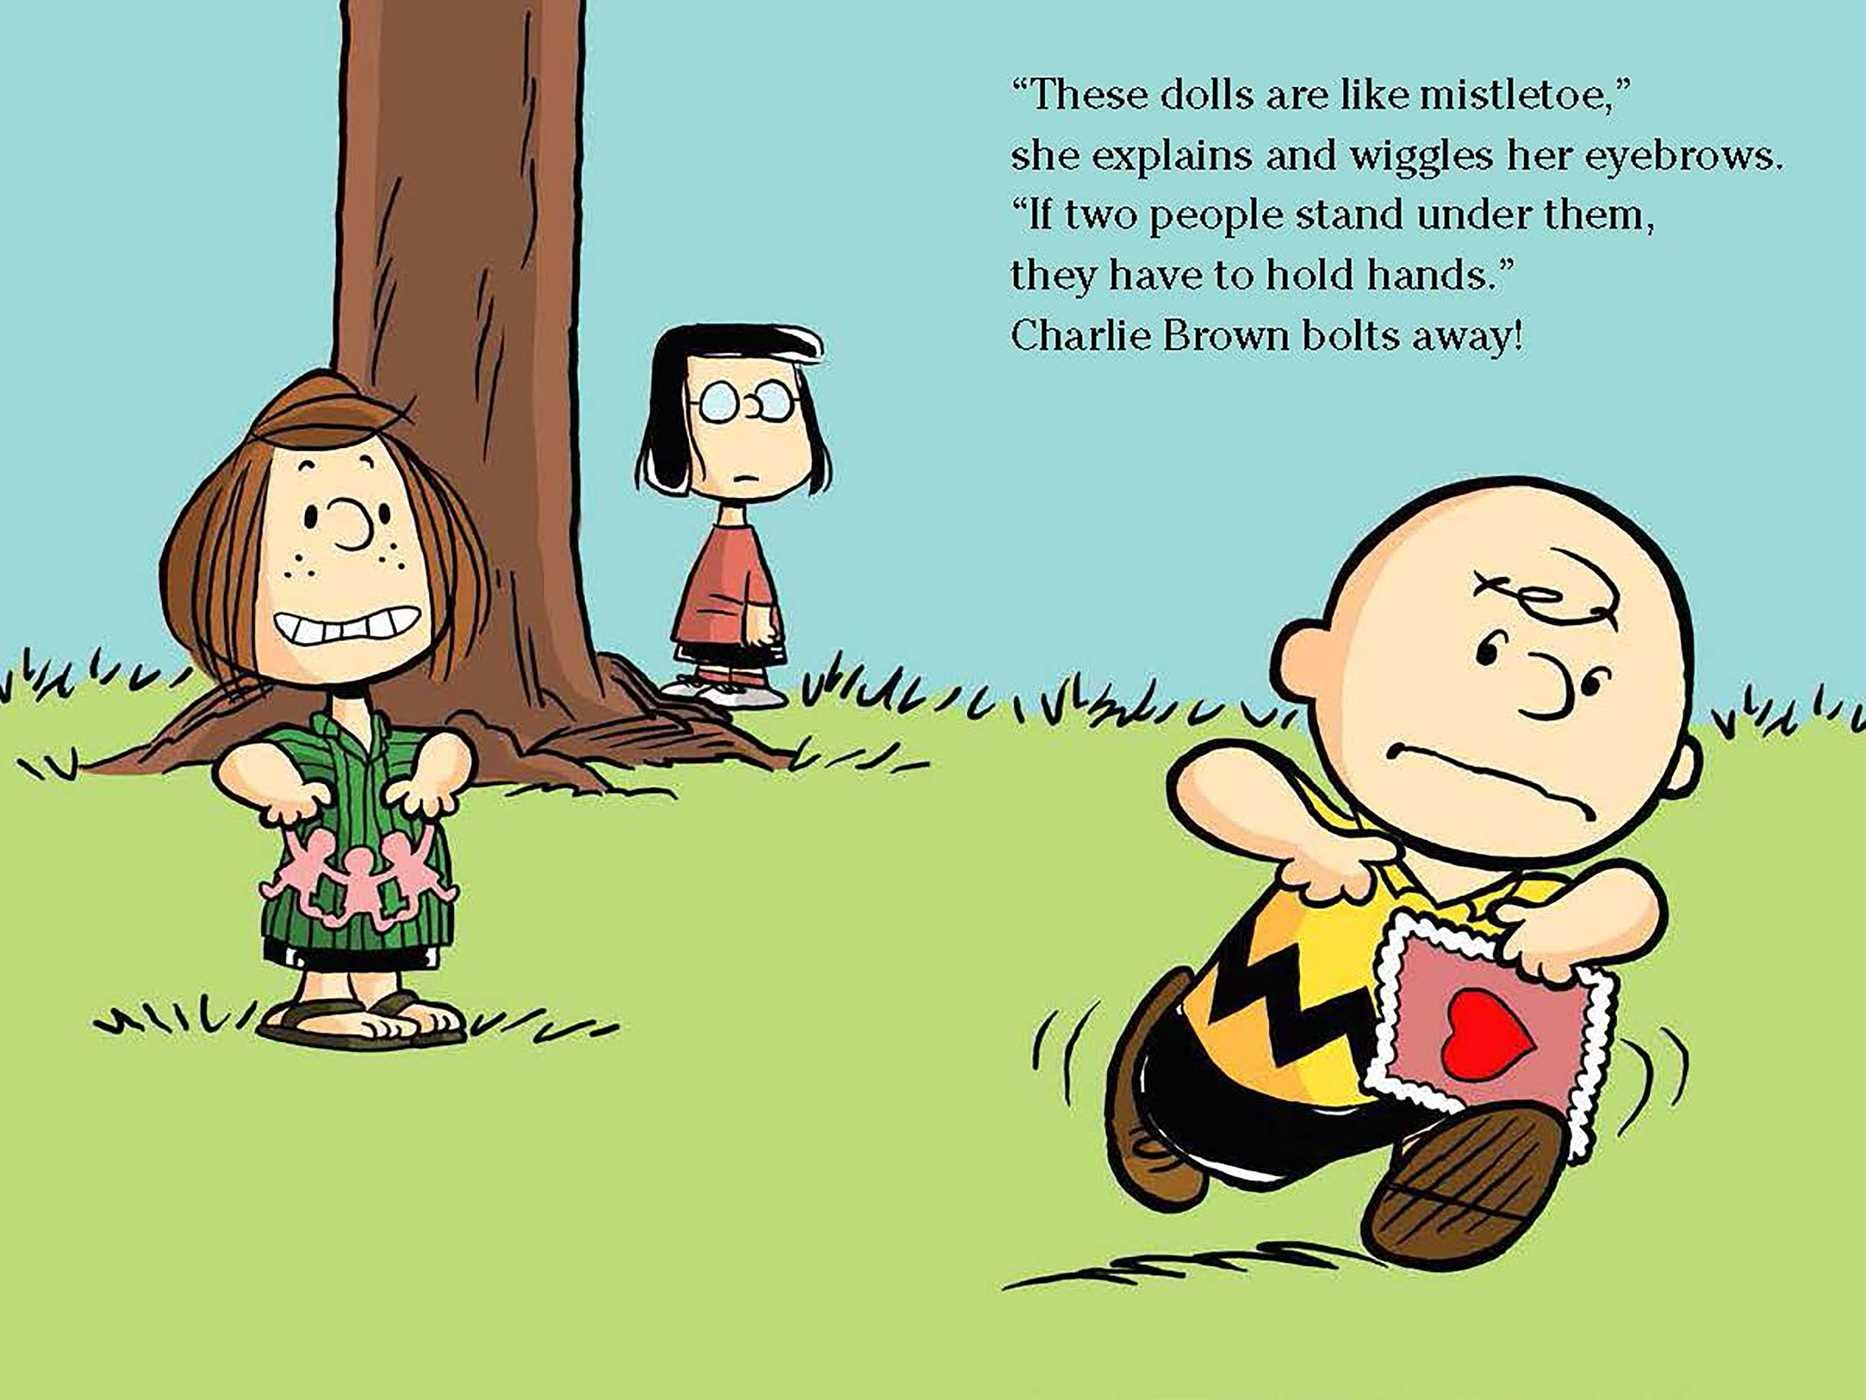 amazoncom happy valentines day charlie brown peanuts 9781481441339 maggie testa charles m schulz scott jeralds books - Charlie Brown Valentine Video